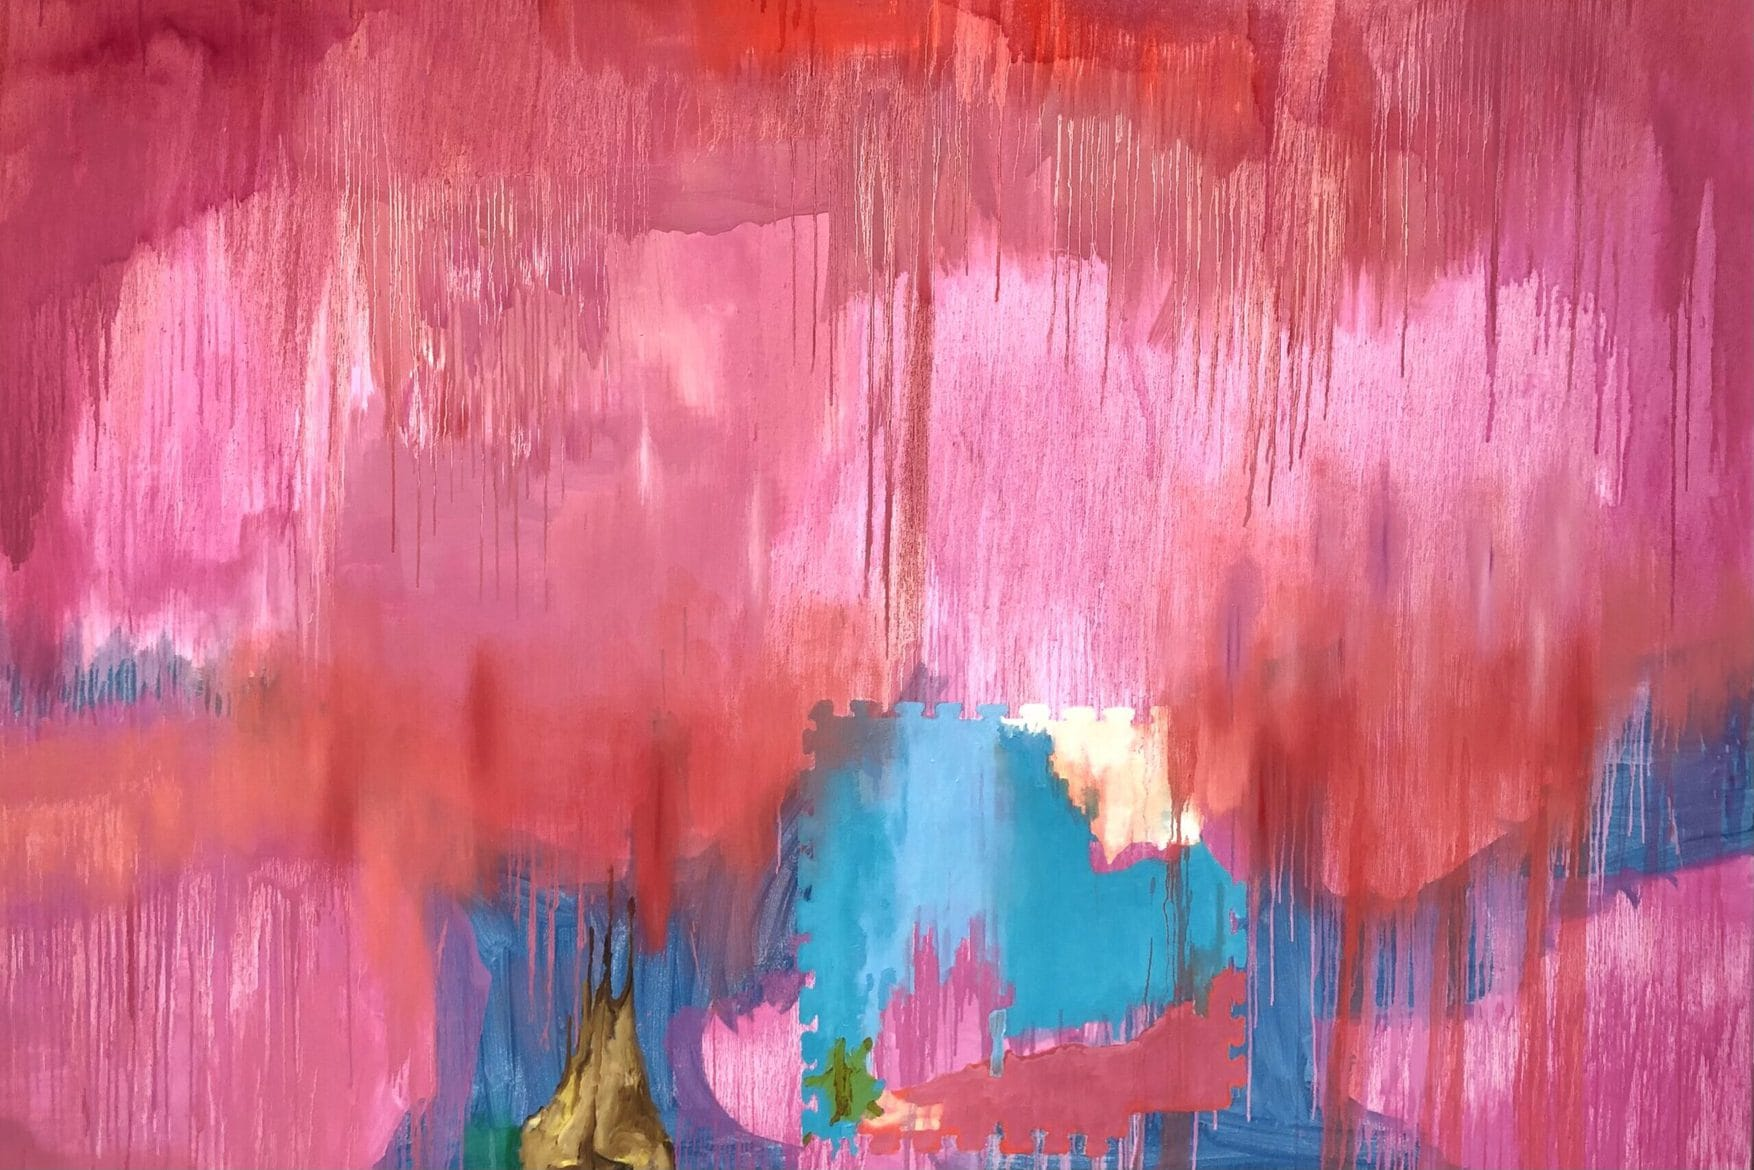 'Pink Variance 2 (Haze)', 2021, acrylic and oil on linen, 183 x 250 cm